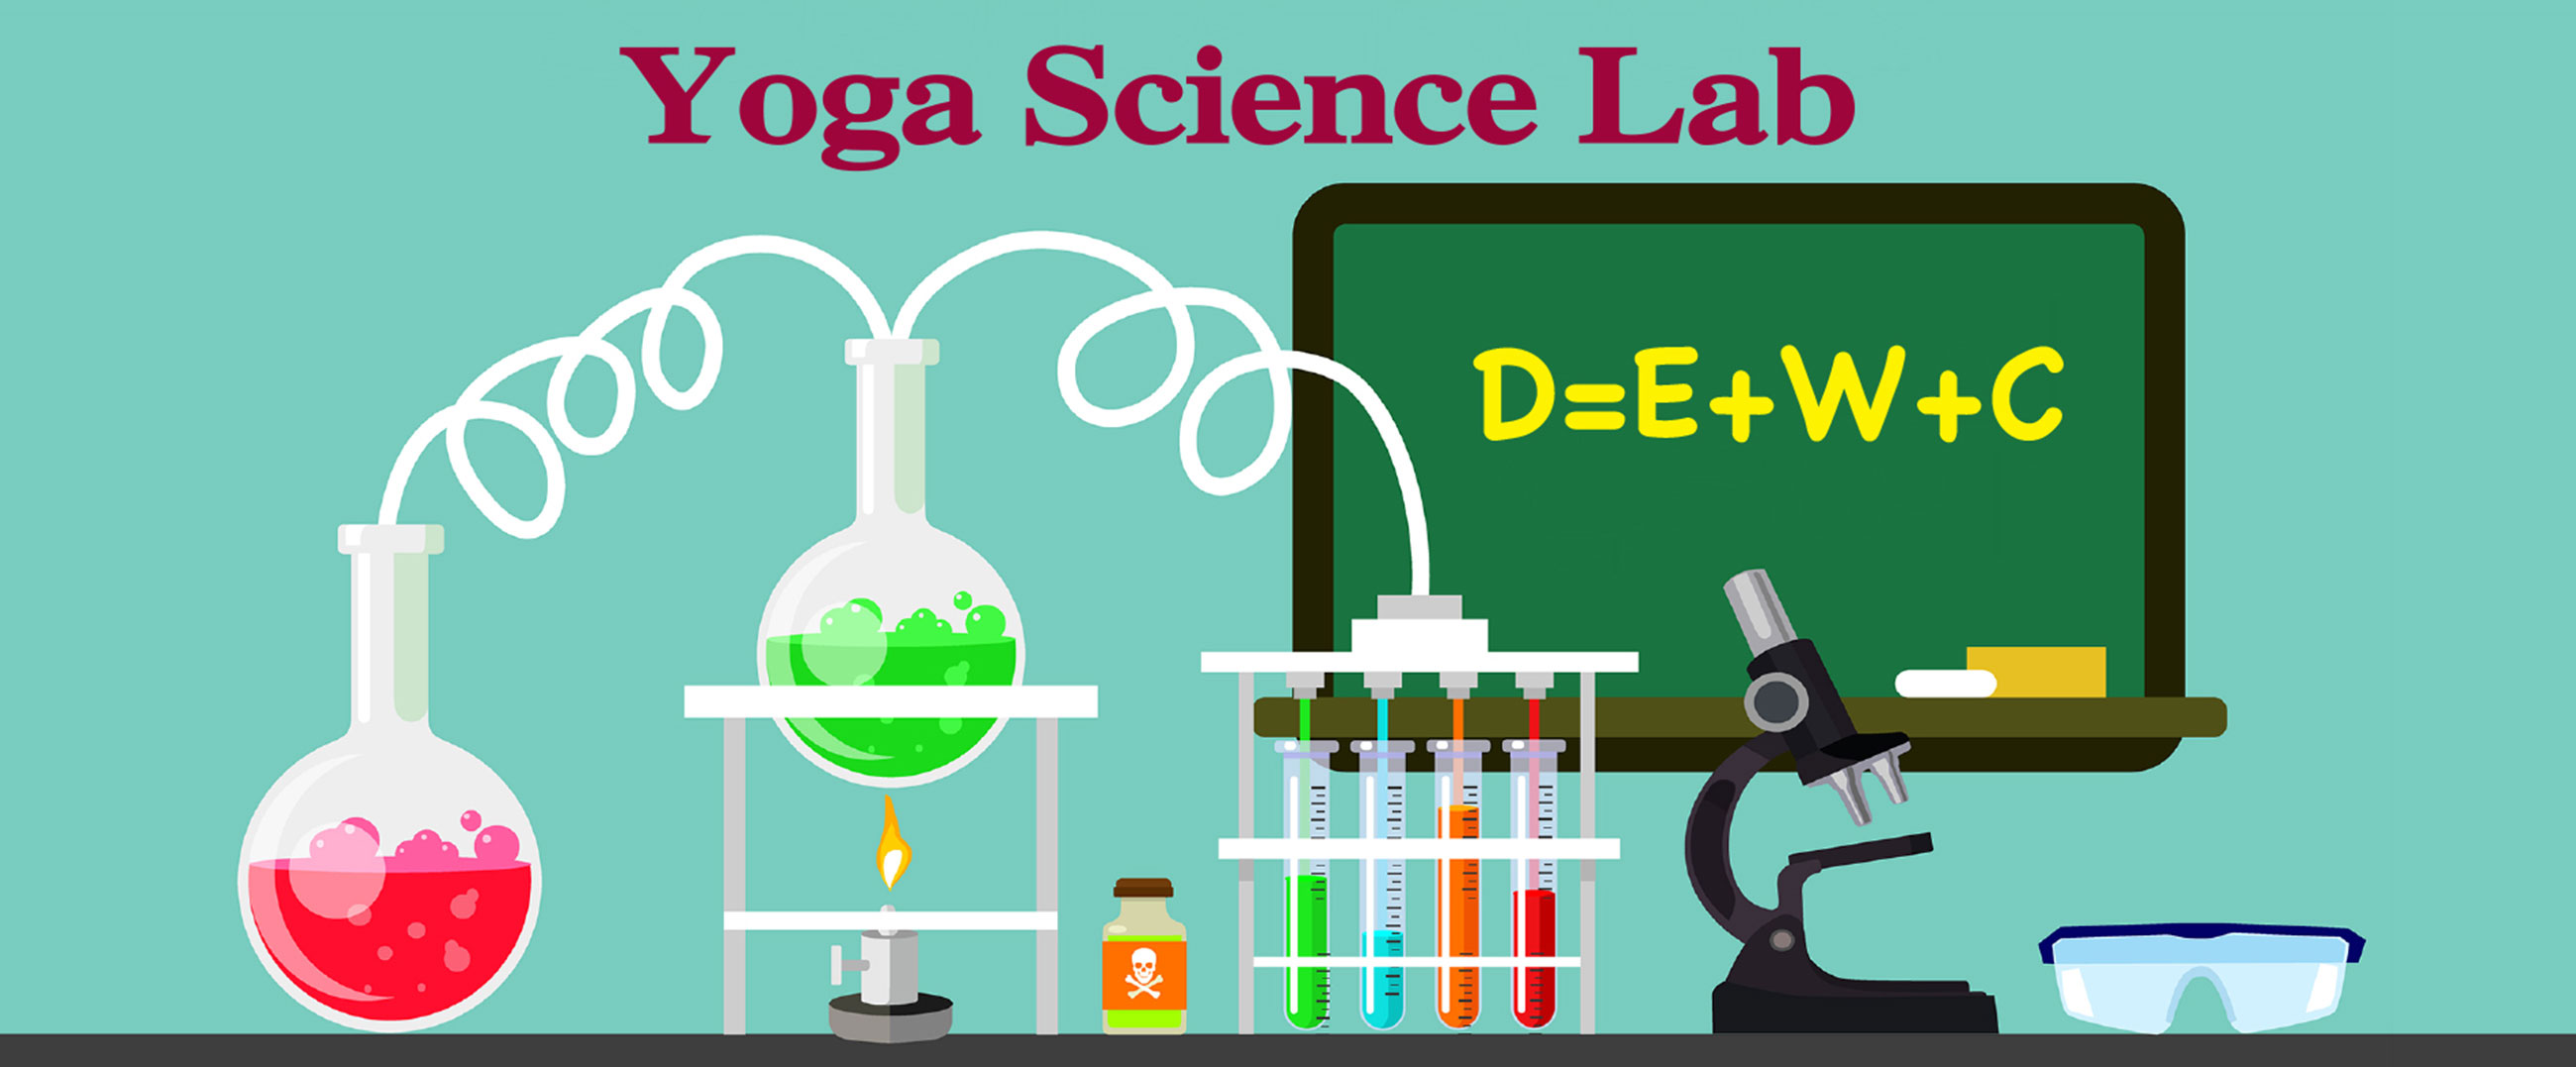 Yoga Science Lab main